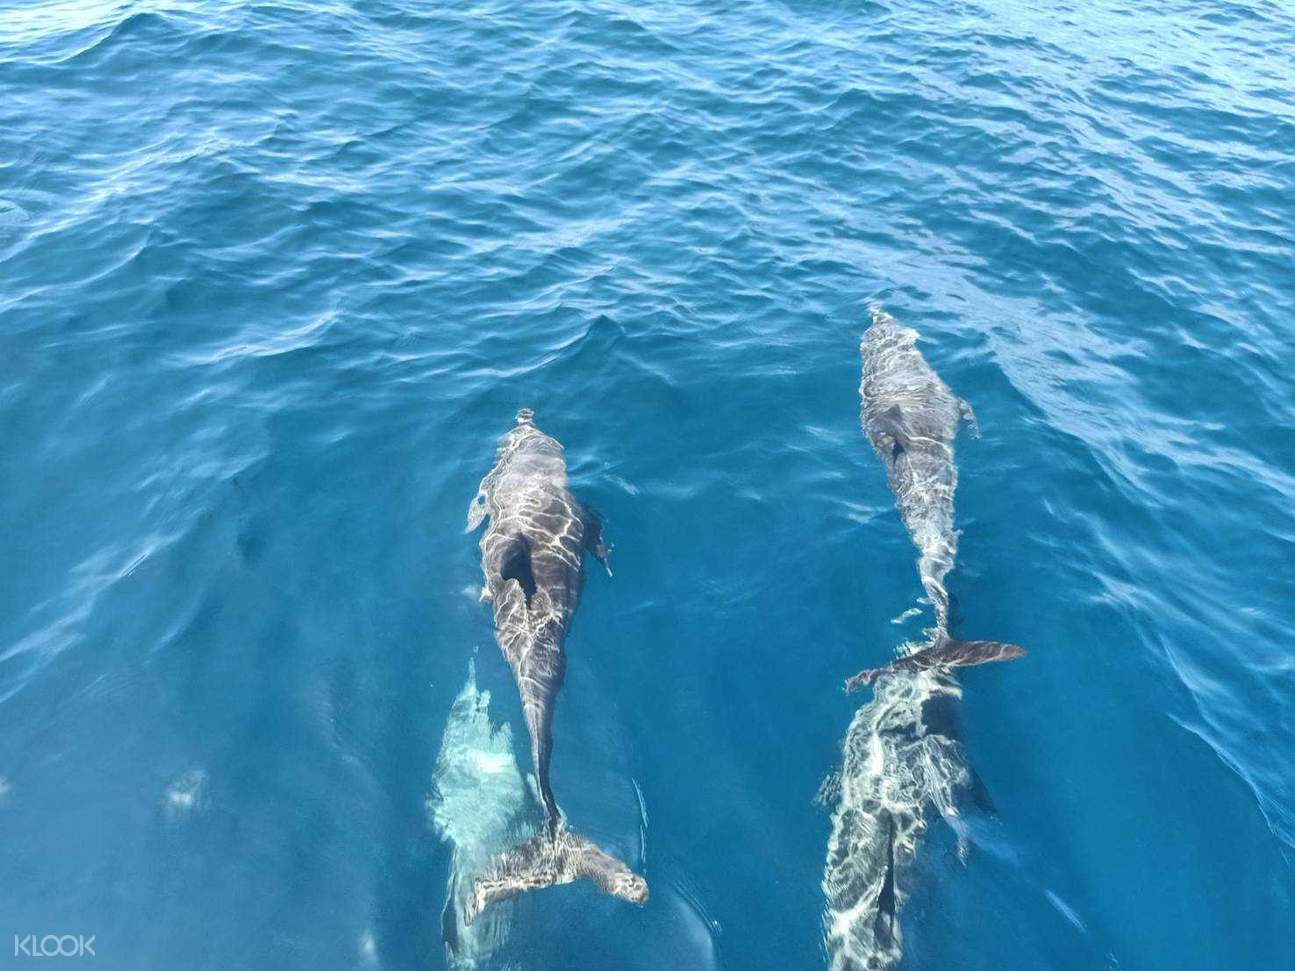 a day you can meet these dolphins